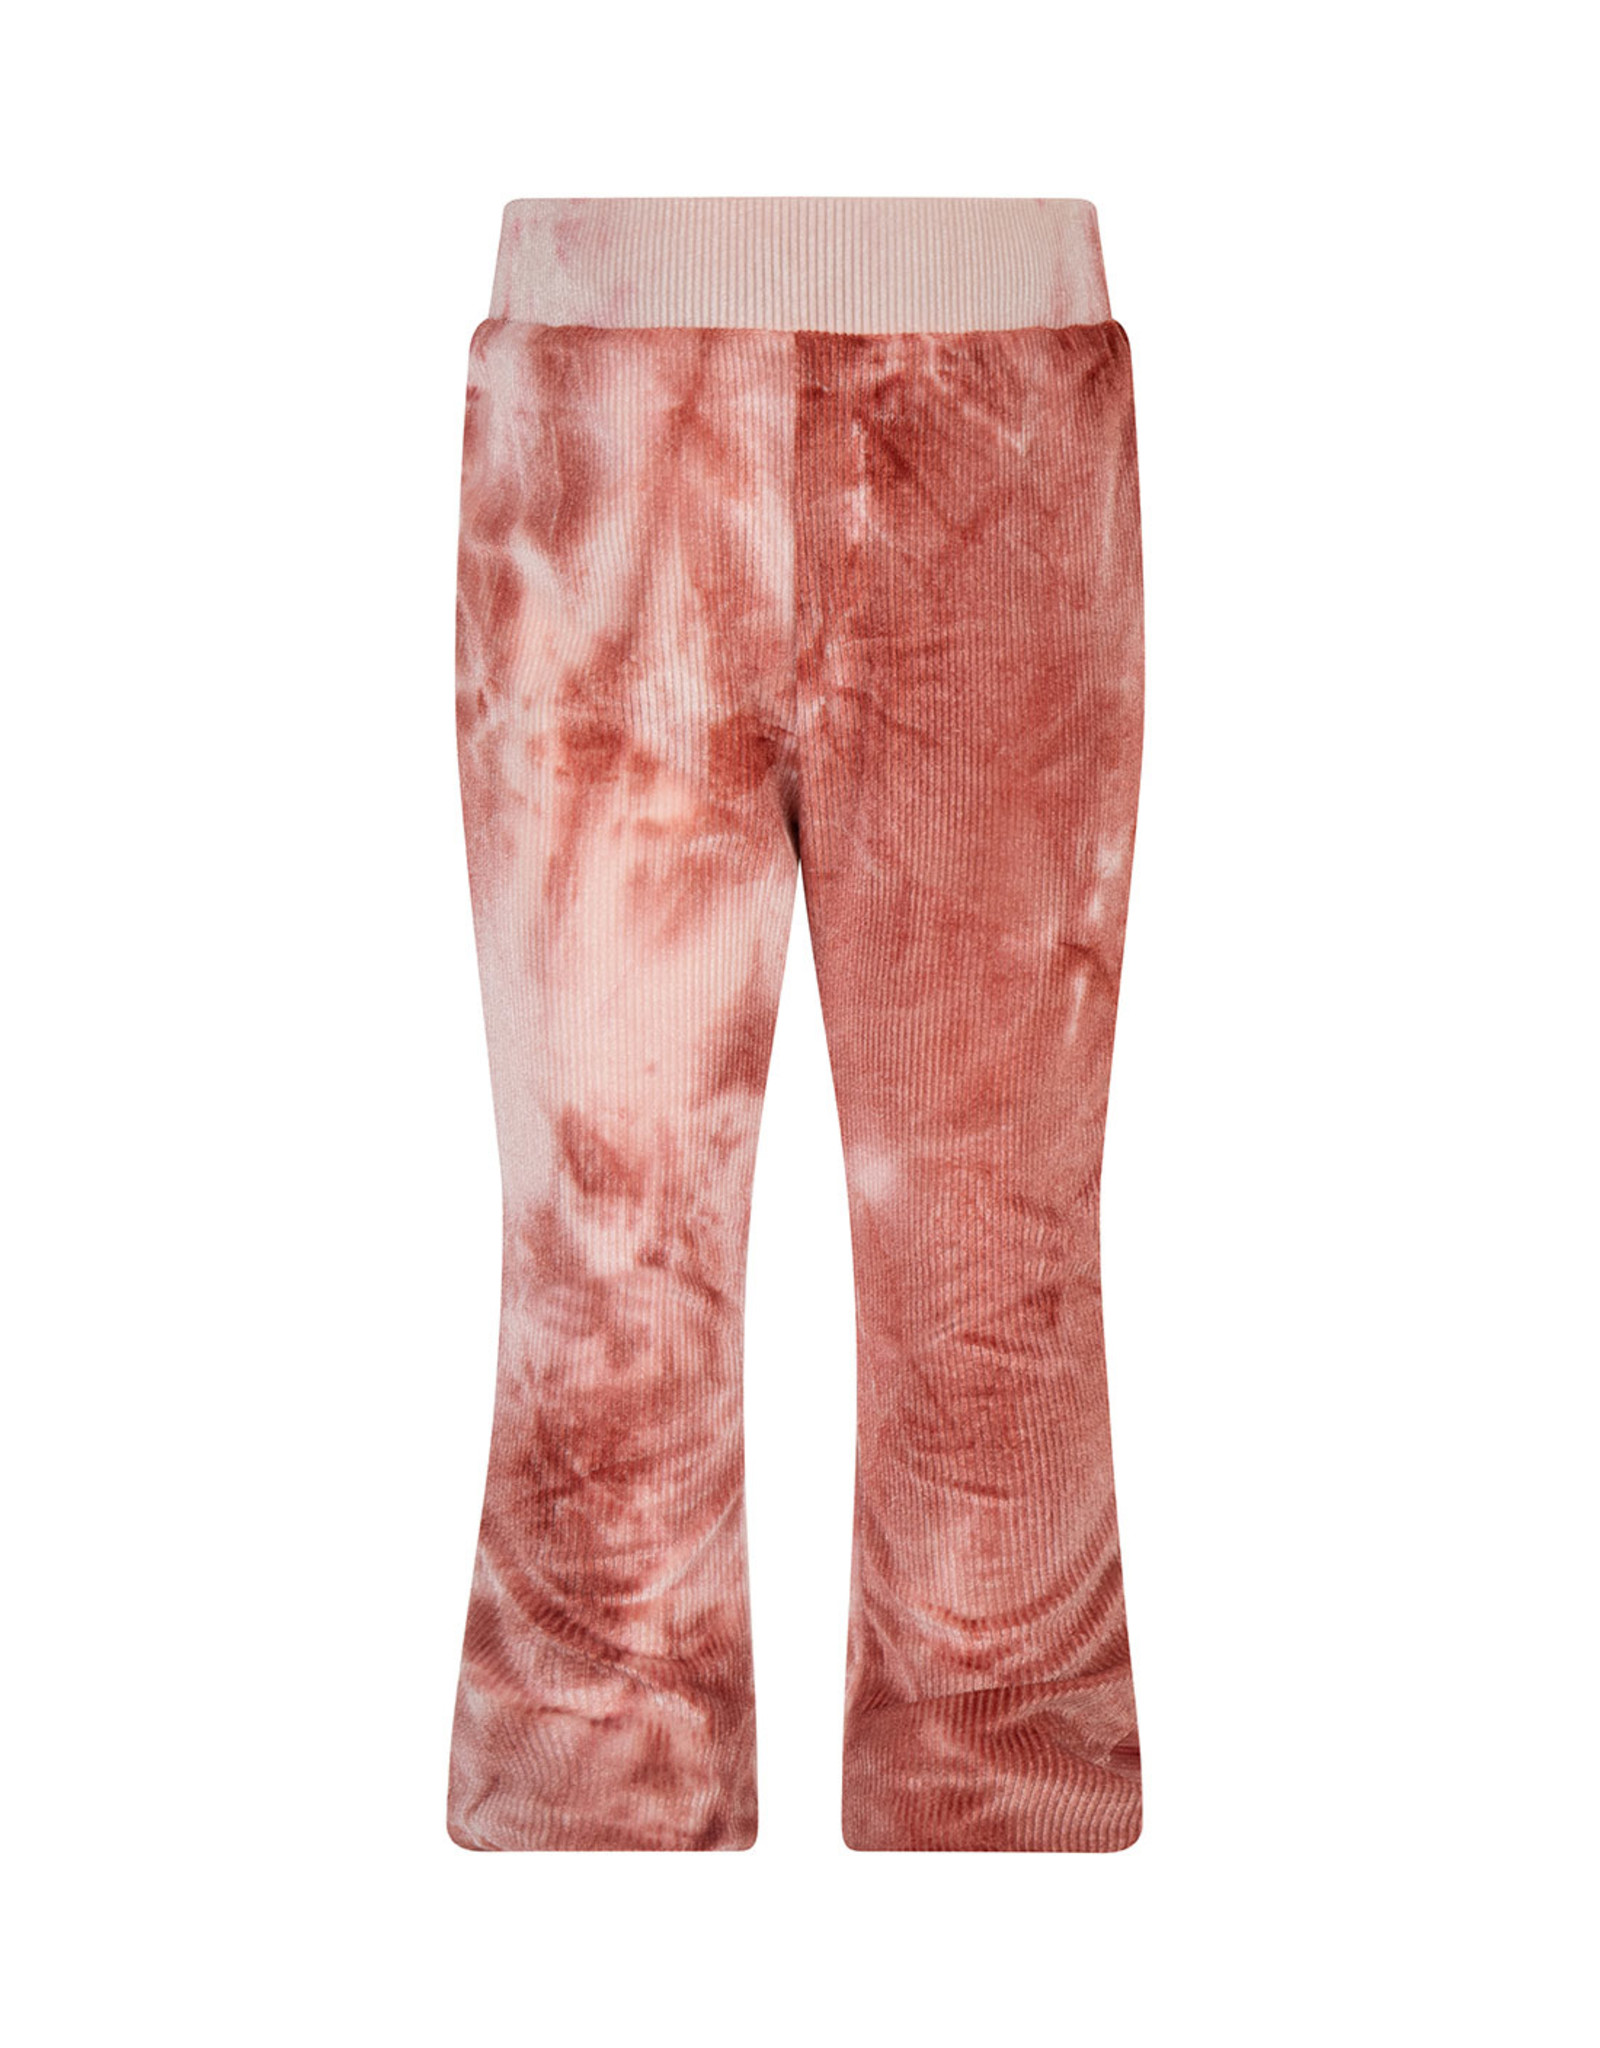 Daily7 Daily7 meisjes flaired pants Tie Dye Barn Bordeaux